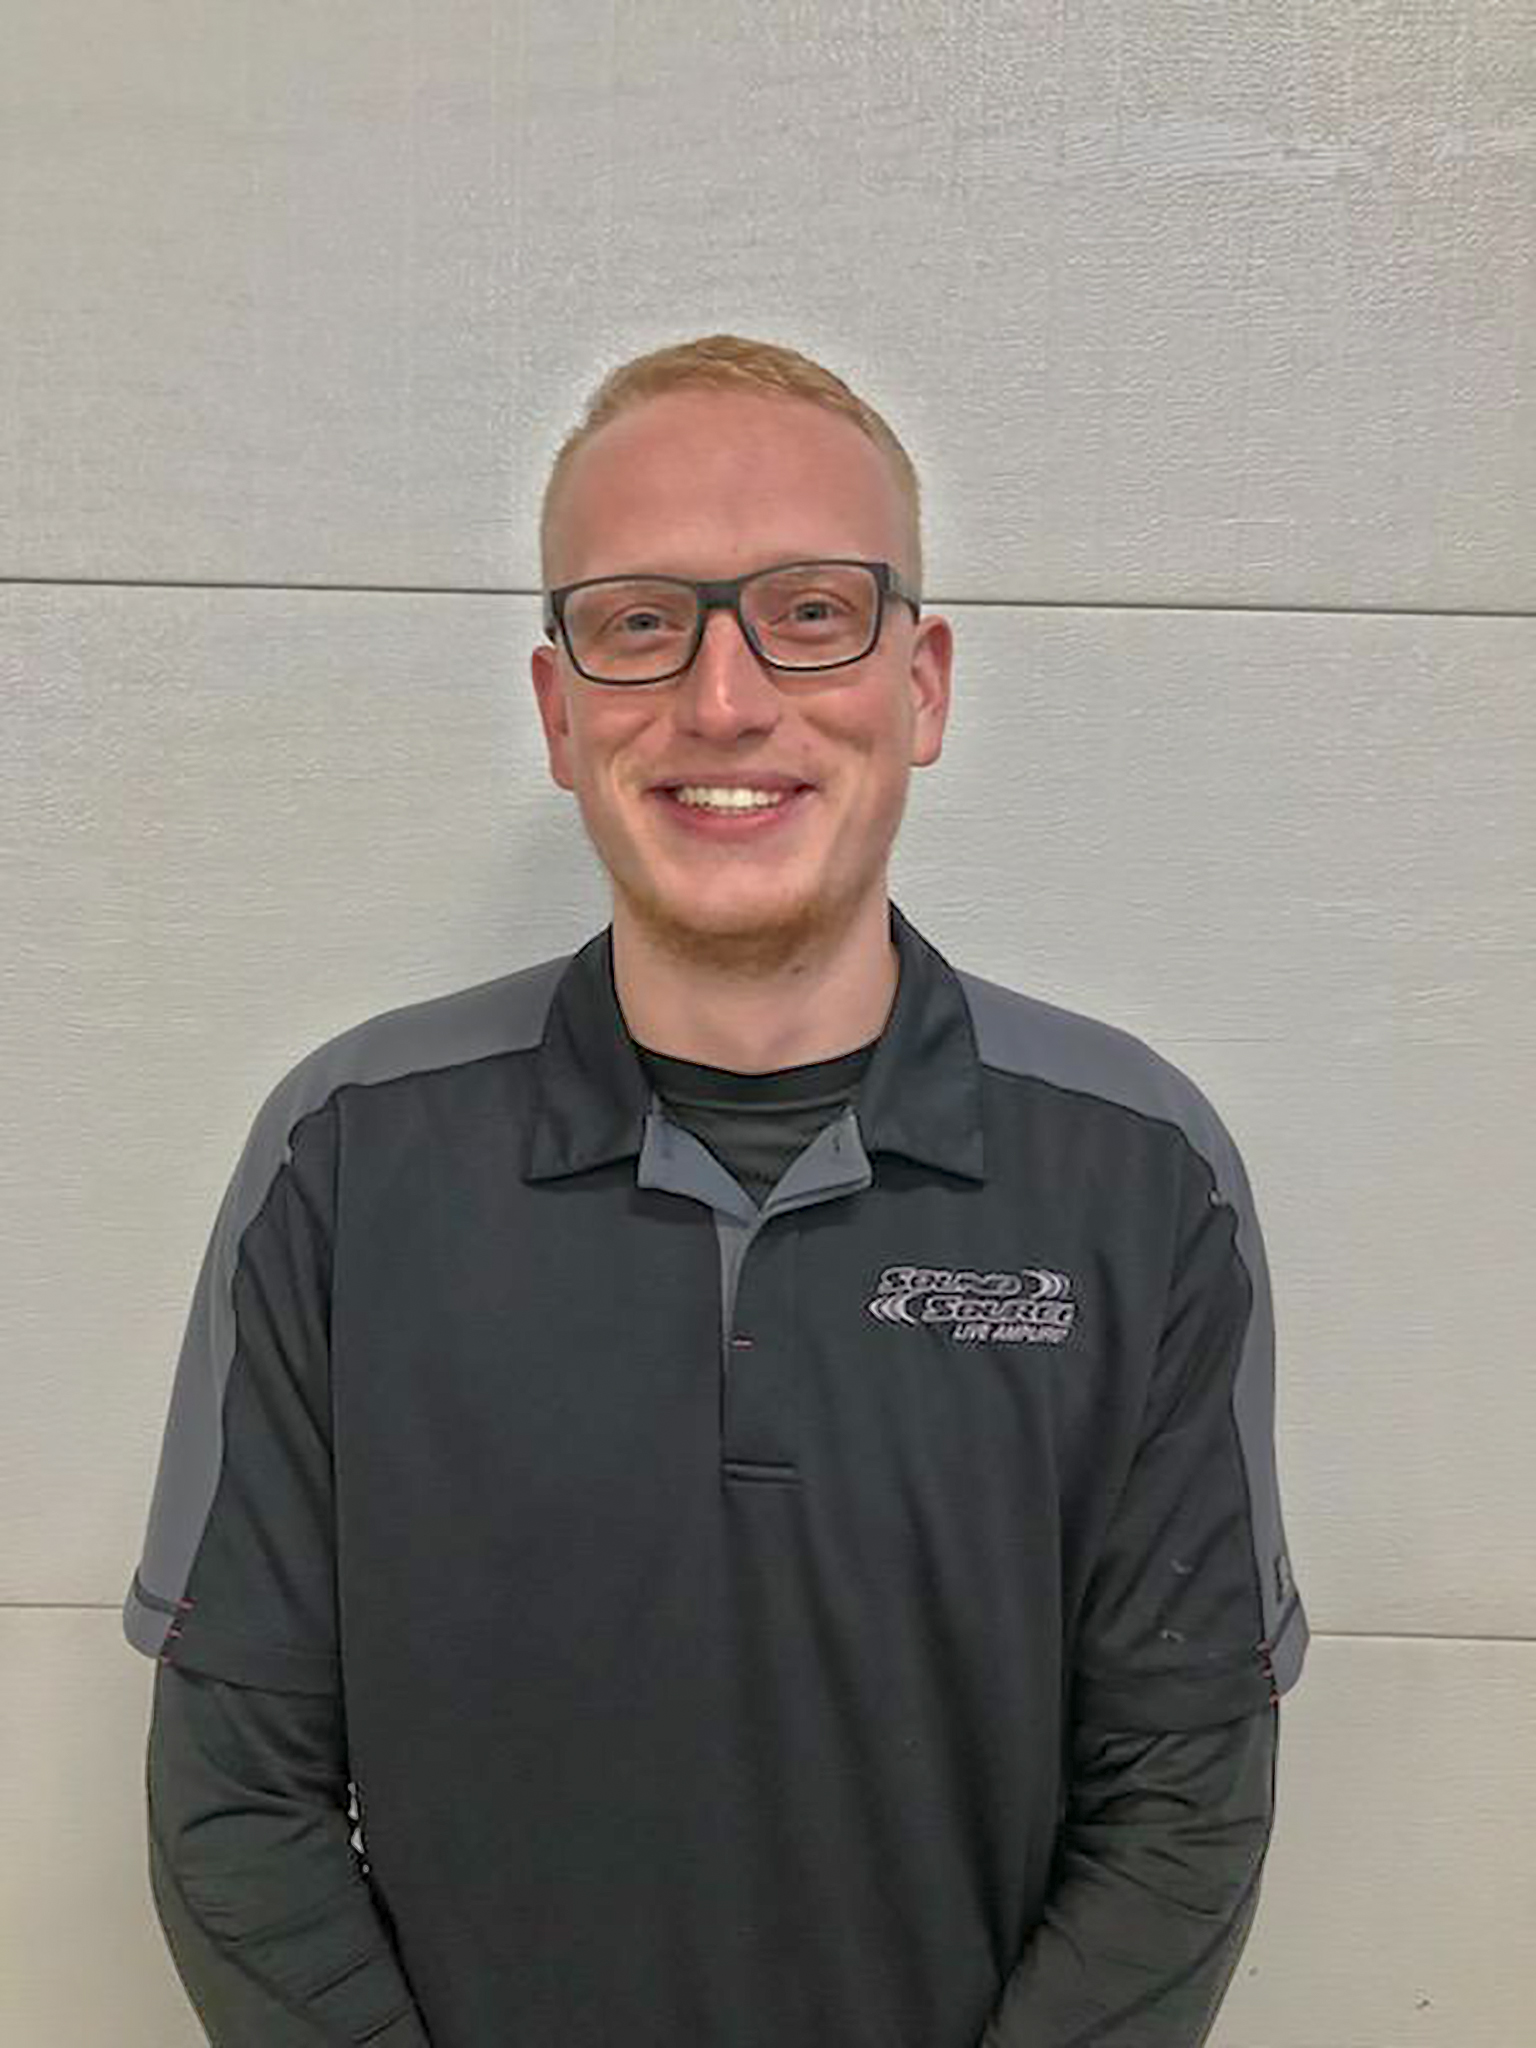 DJ Bluemel - DJ is our store manager. He graduated from Idaho State University in 2017 and received his degree in business management/administration. He is also one of our Control4 experts.